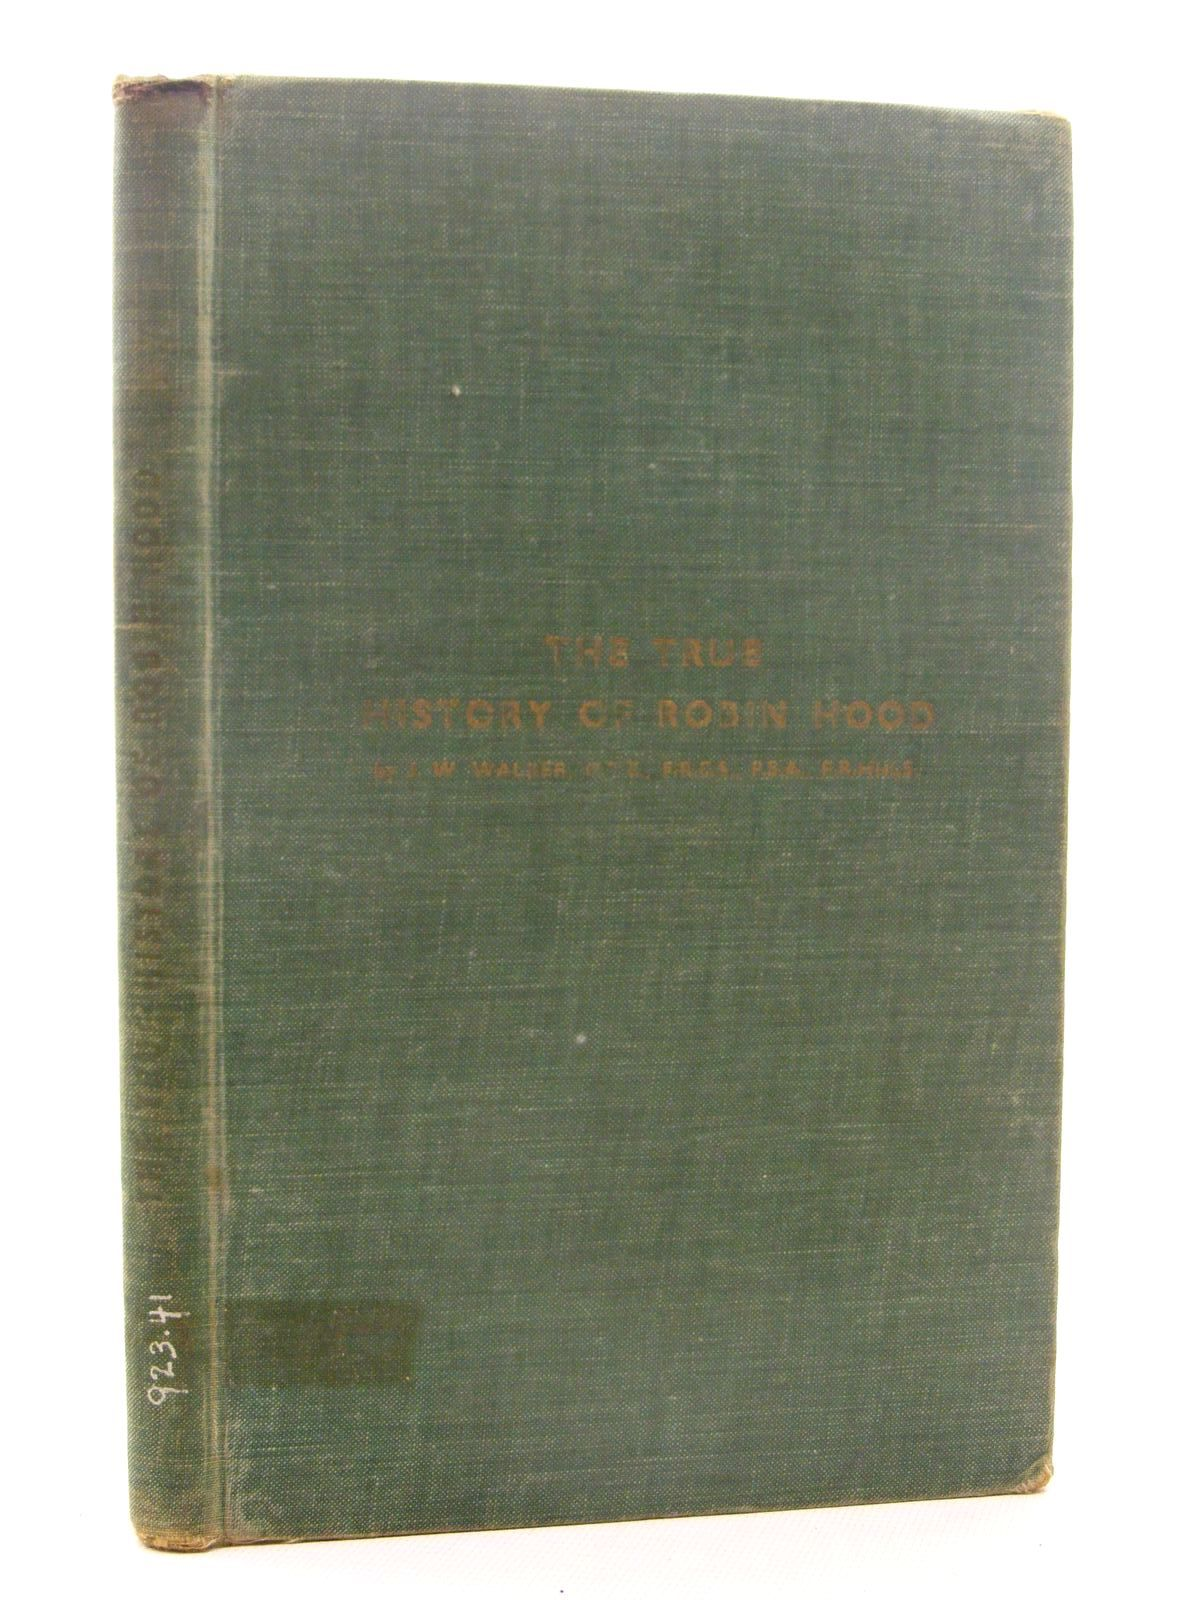 Photo of THE TRUE HISTORY OF ROBIN HOOD written by Walker, J.W. illustrated by Walker, Ethel W. published by The West Yorkshire Printing Co. Ltd. (STOCK CODE: 1815958)  for sale by Stella & Rose's Books